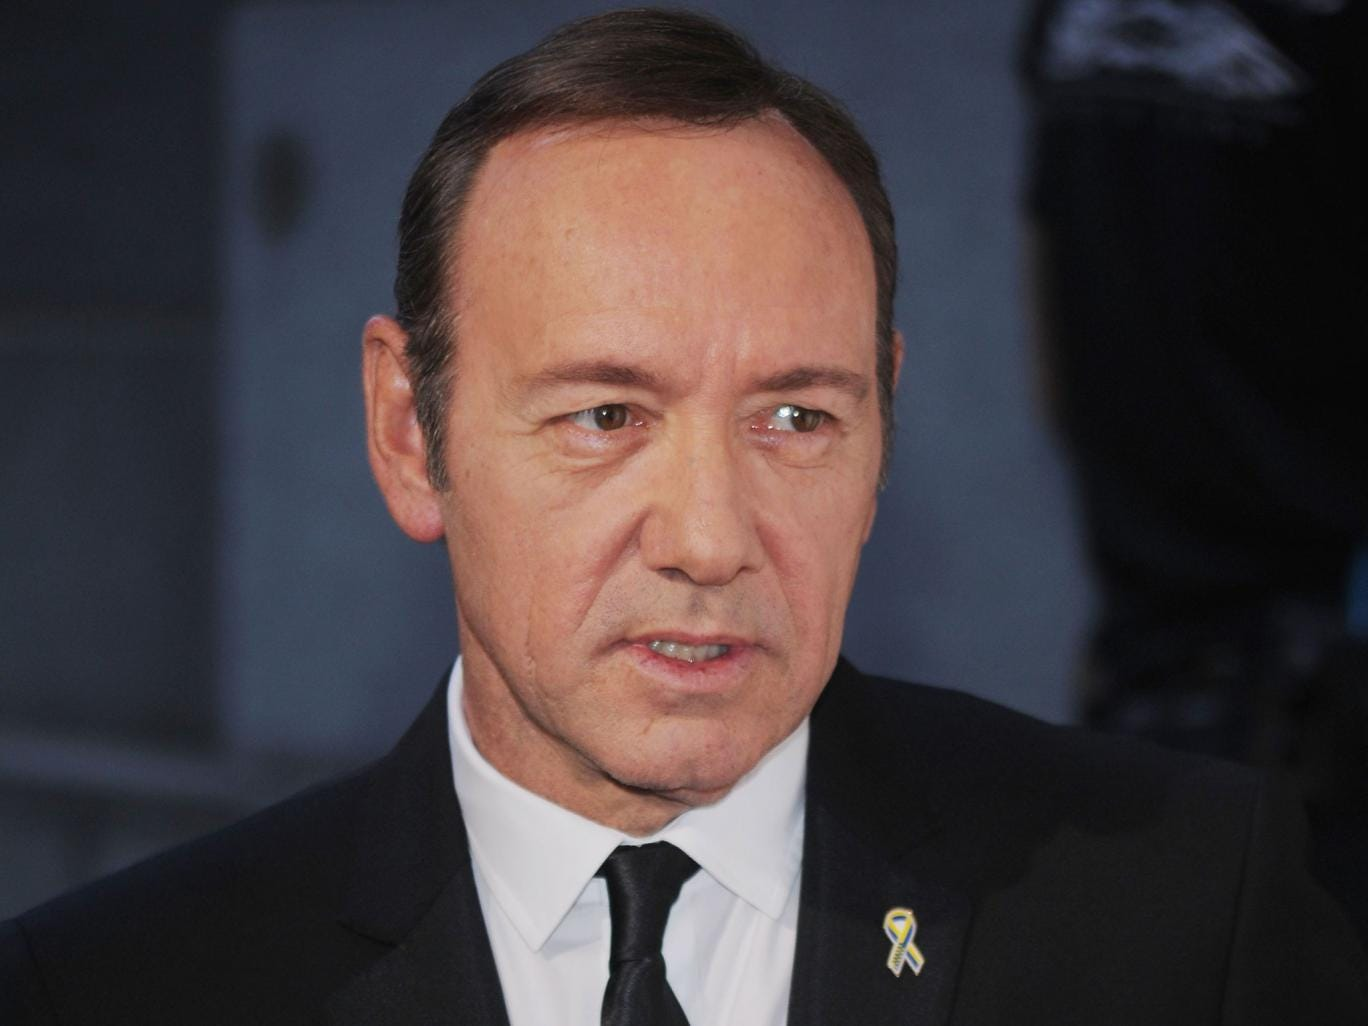 The actor Kevin Spacey provided a character reference